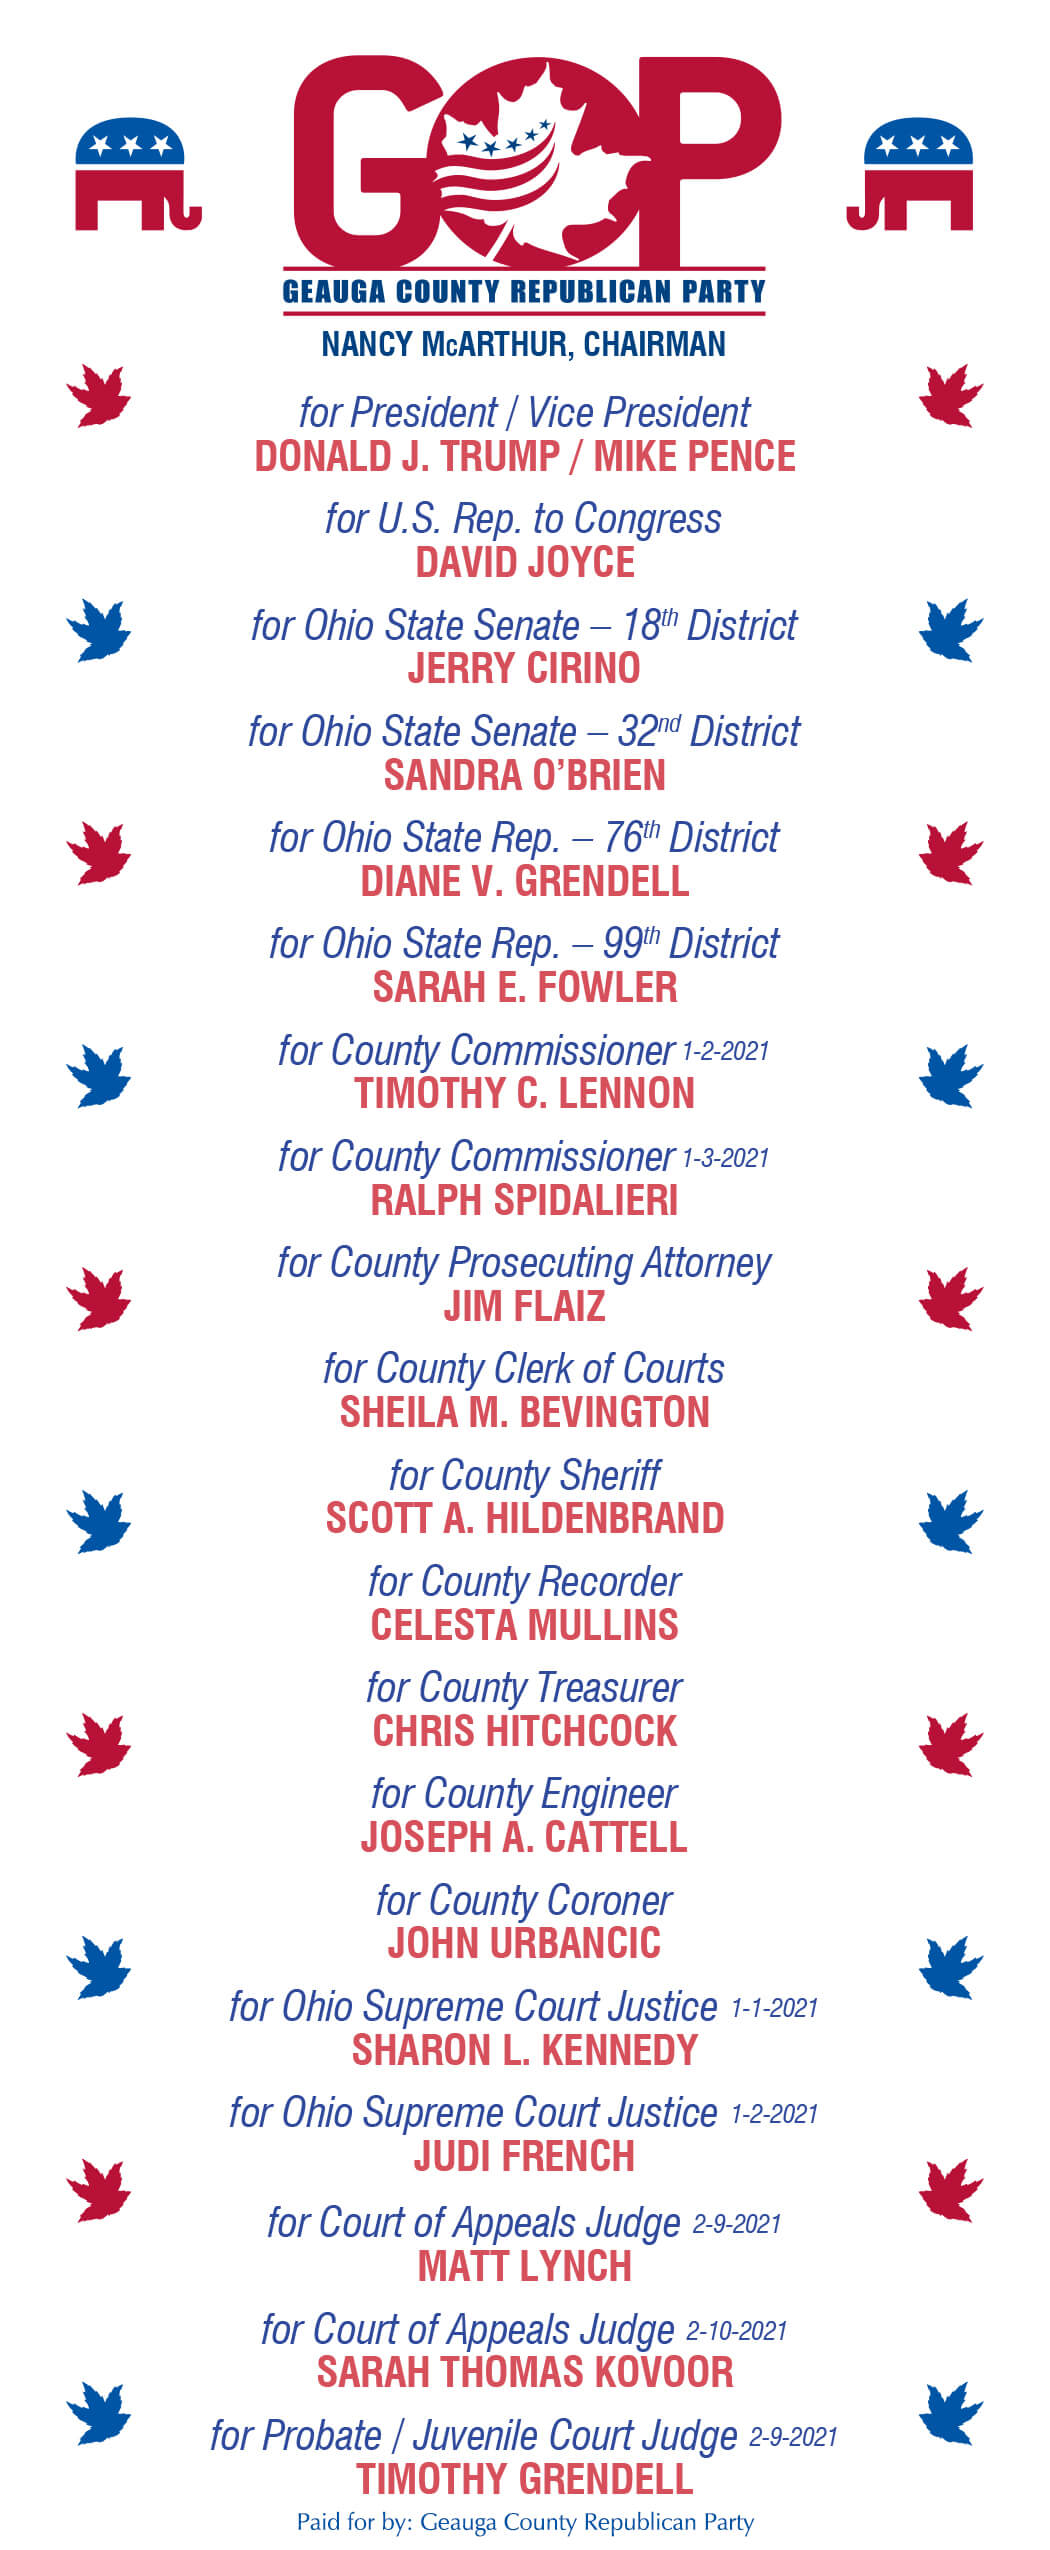 Geauga County GOP Slate Card for November 2020 election